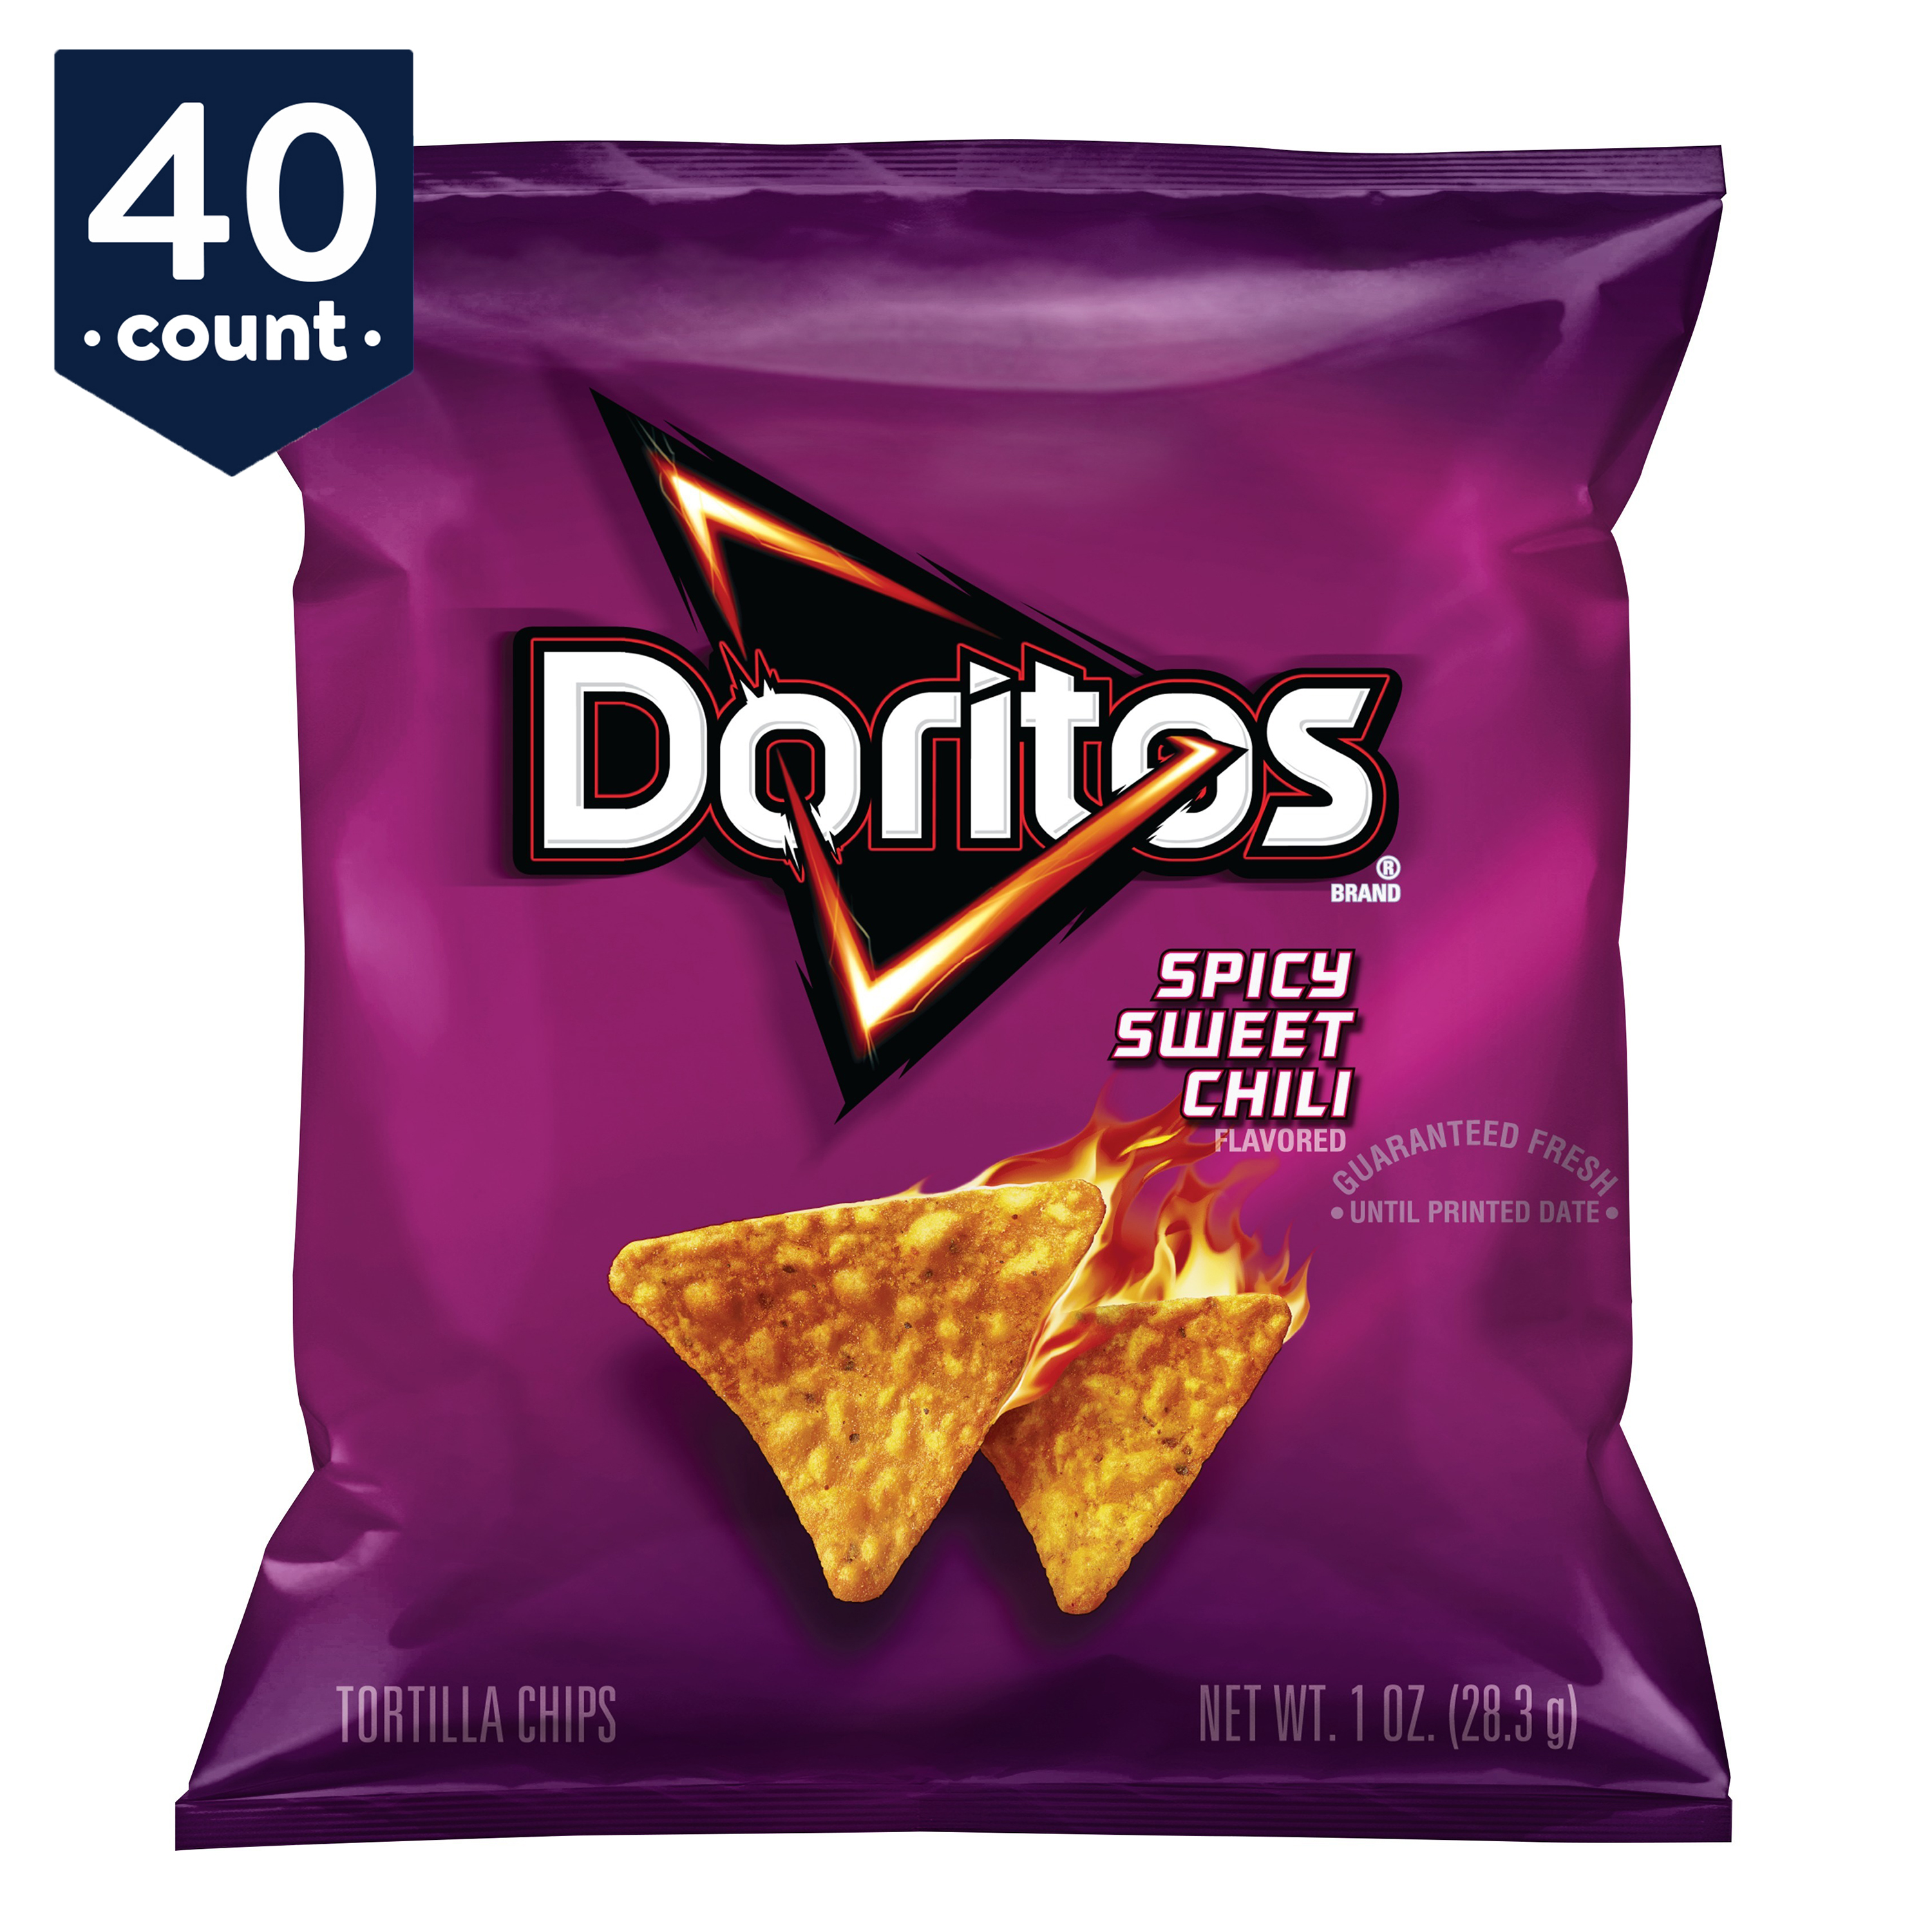 Doritos Tortilla Chips Snack Pack, Spicy Sweet Chili, 1 oz Bags, 40 Count